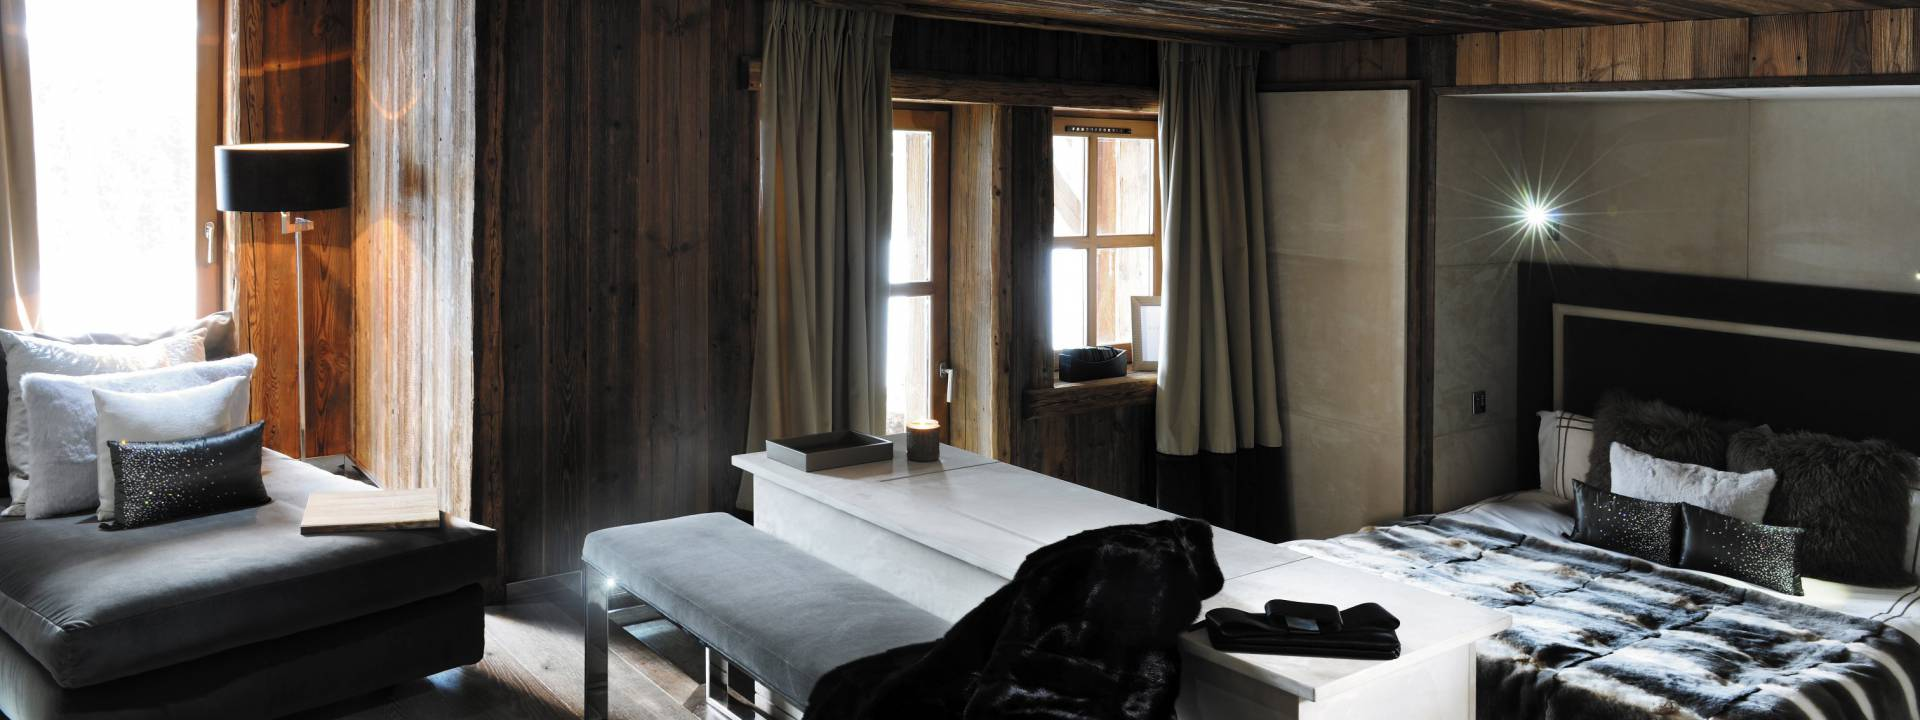 Luxury Winter Chalet, Bedroom, Switzerland